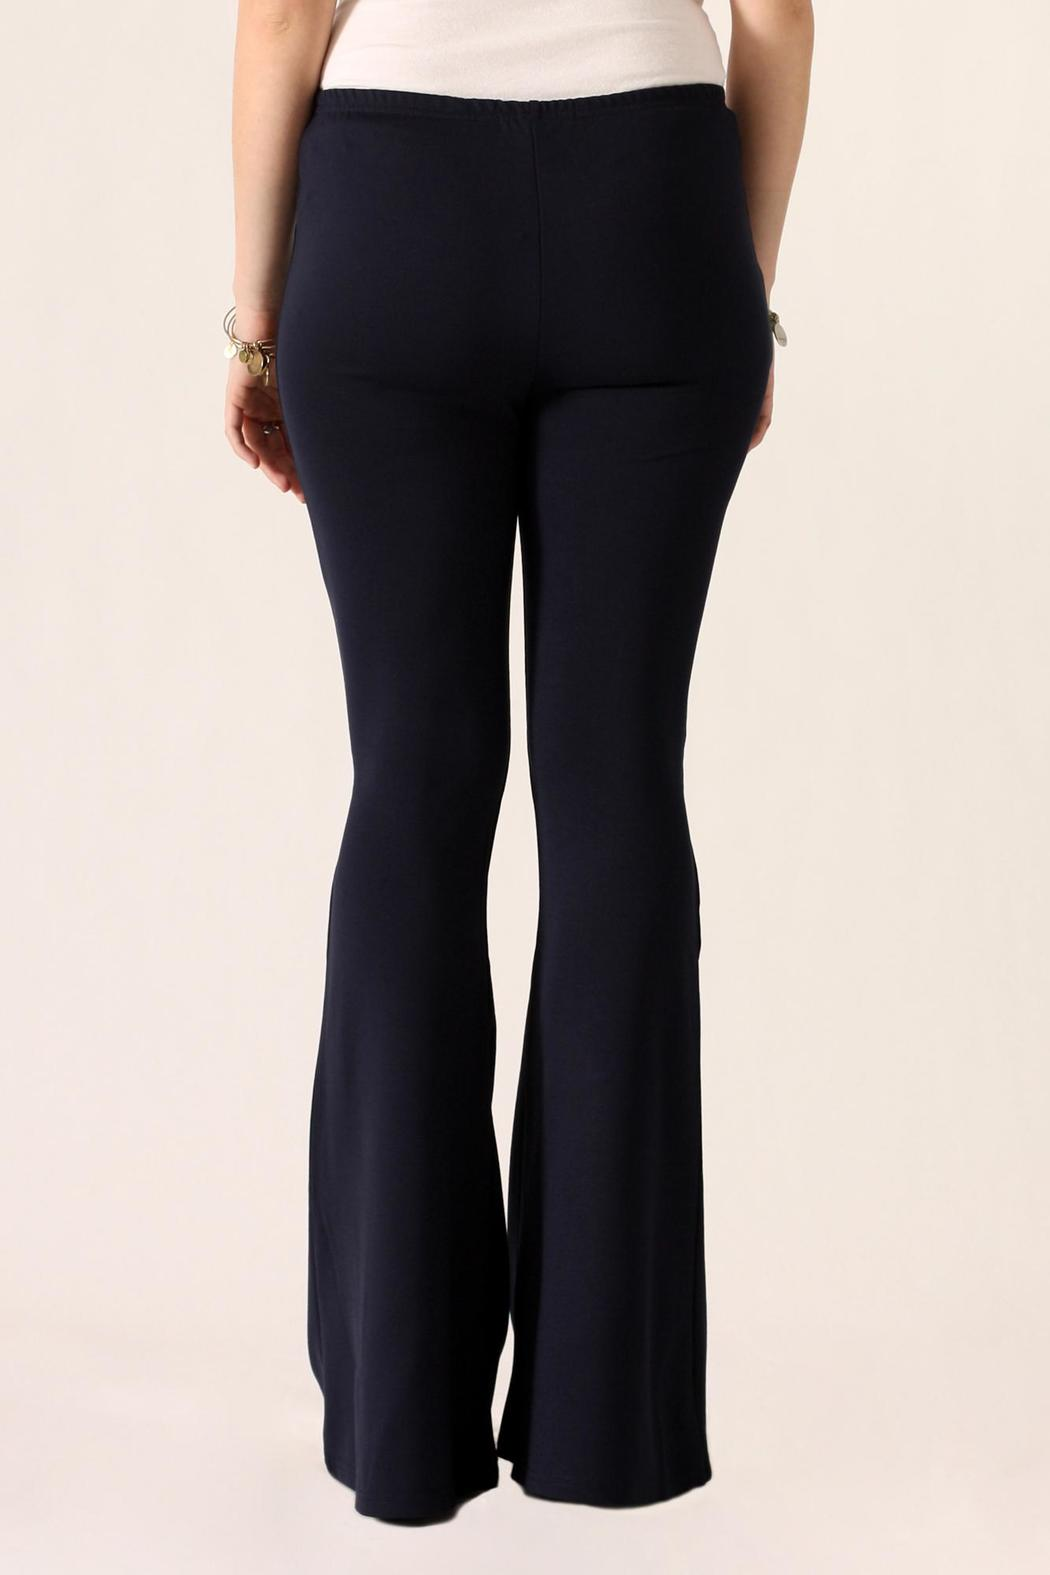 She + Sky Bell Bottom Pants - Back Cropped Image